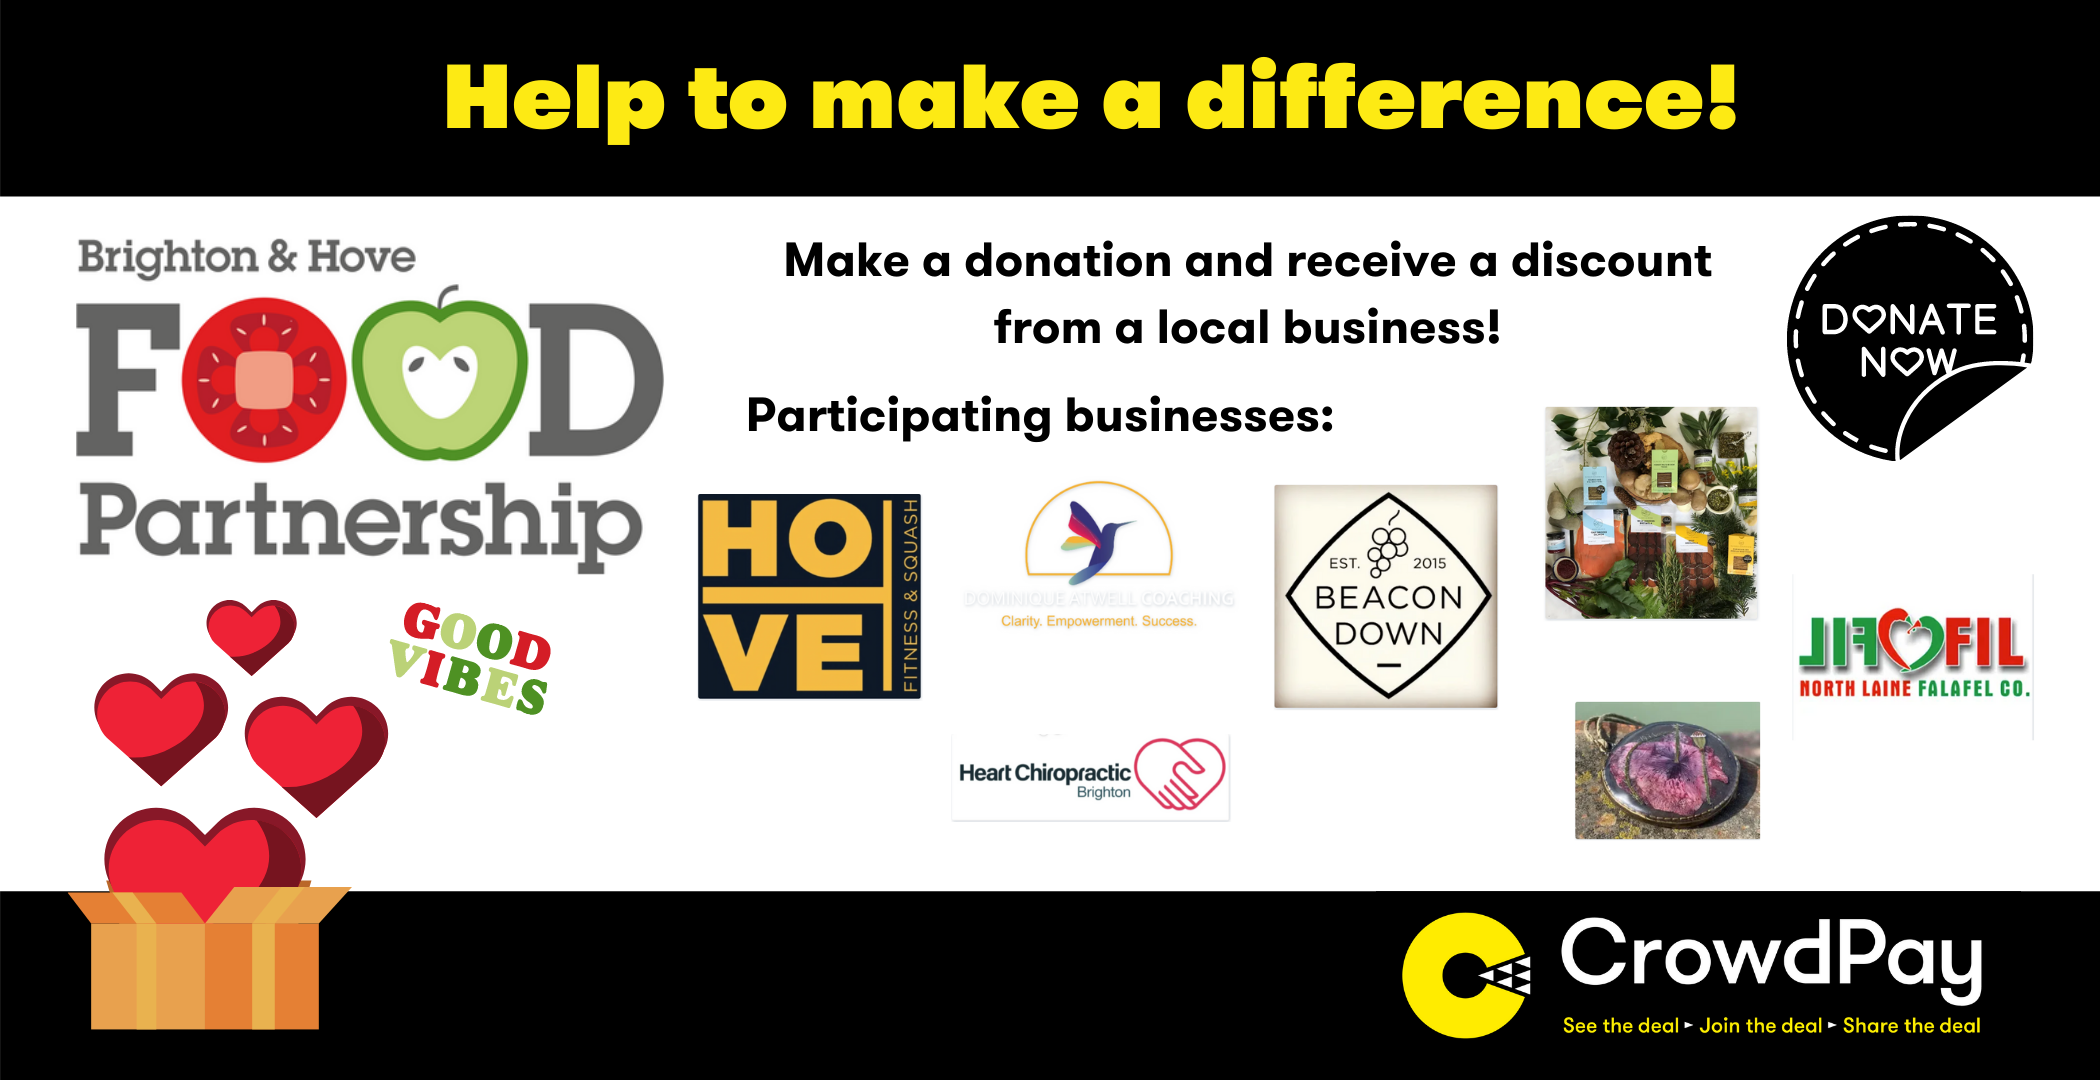 Creating a Win-Win-Win, a new way of fundraising to support Brighton and Hove Food Partnership!